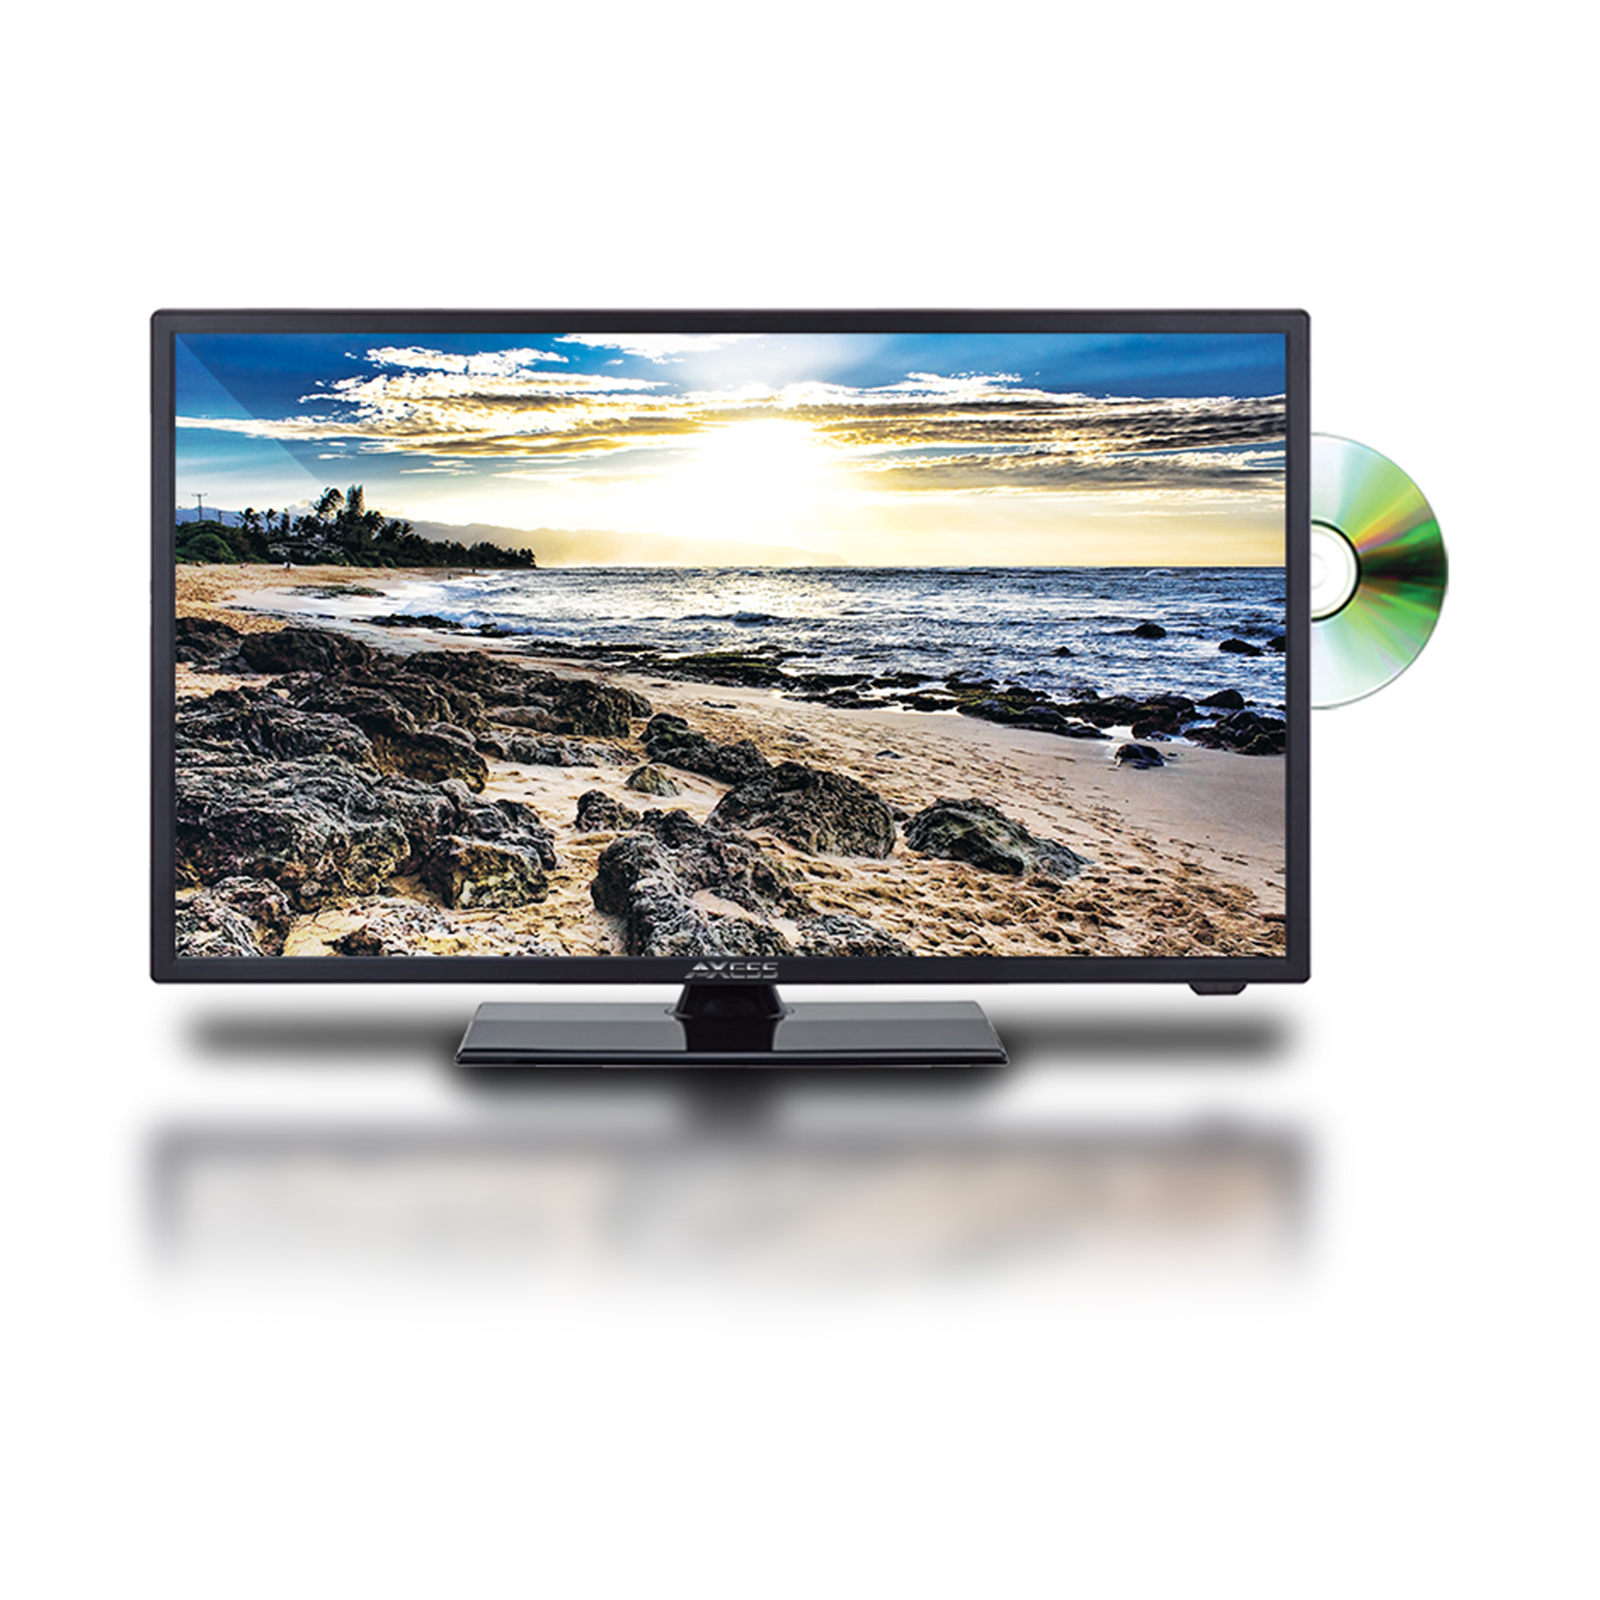 Axess 24-Inch 1080p Digital LED Full HDTV, Includes AC/DC TV, DVD Player, HDMI/SD/USB Inputs, TVD1803-24